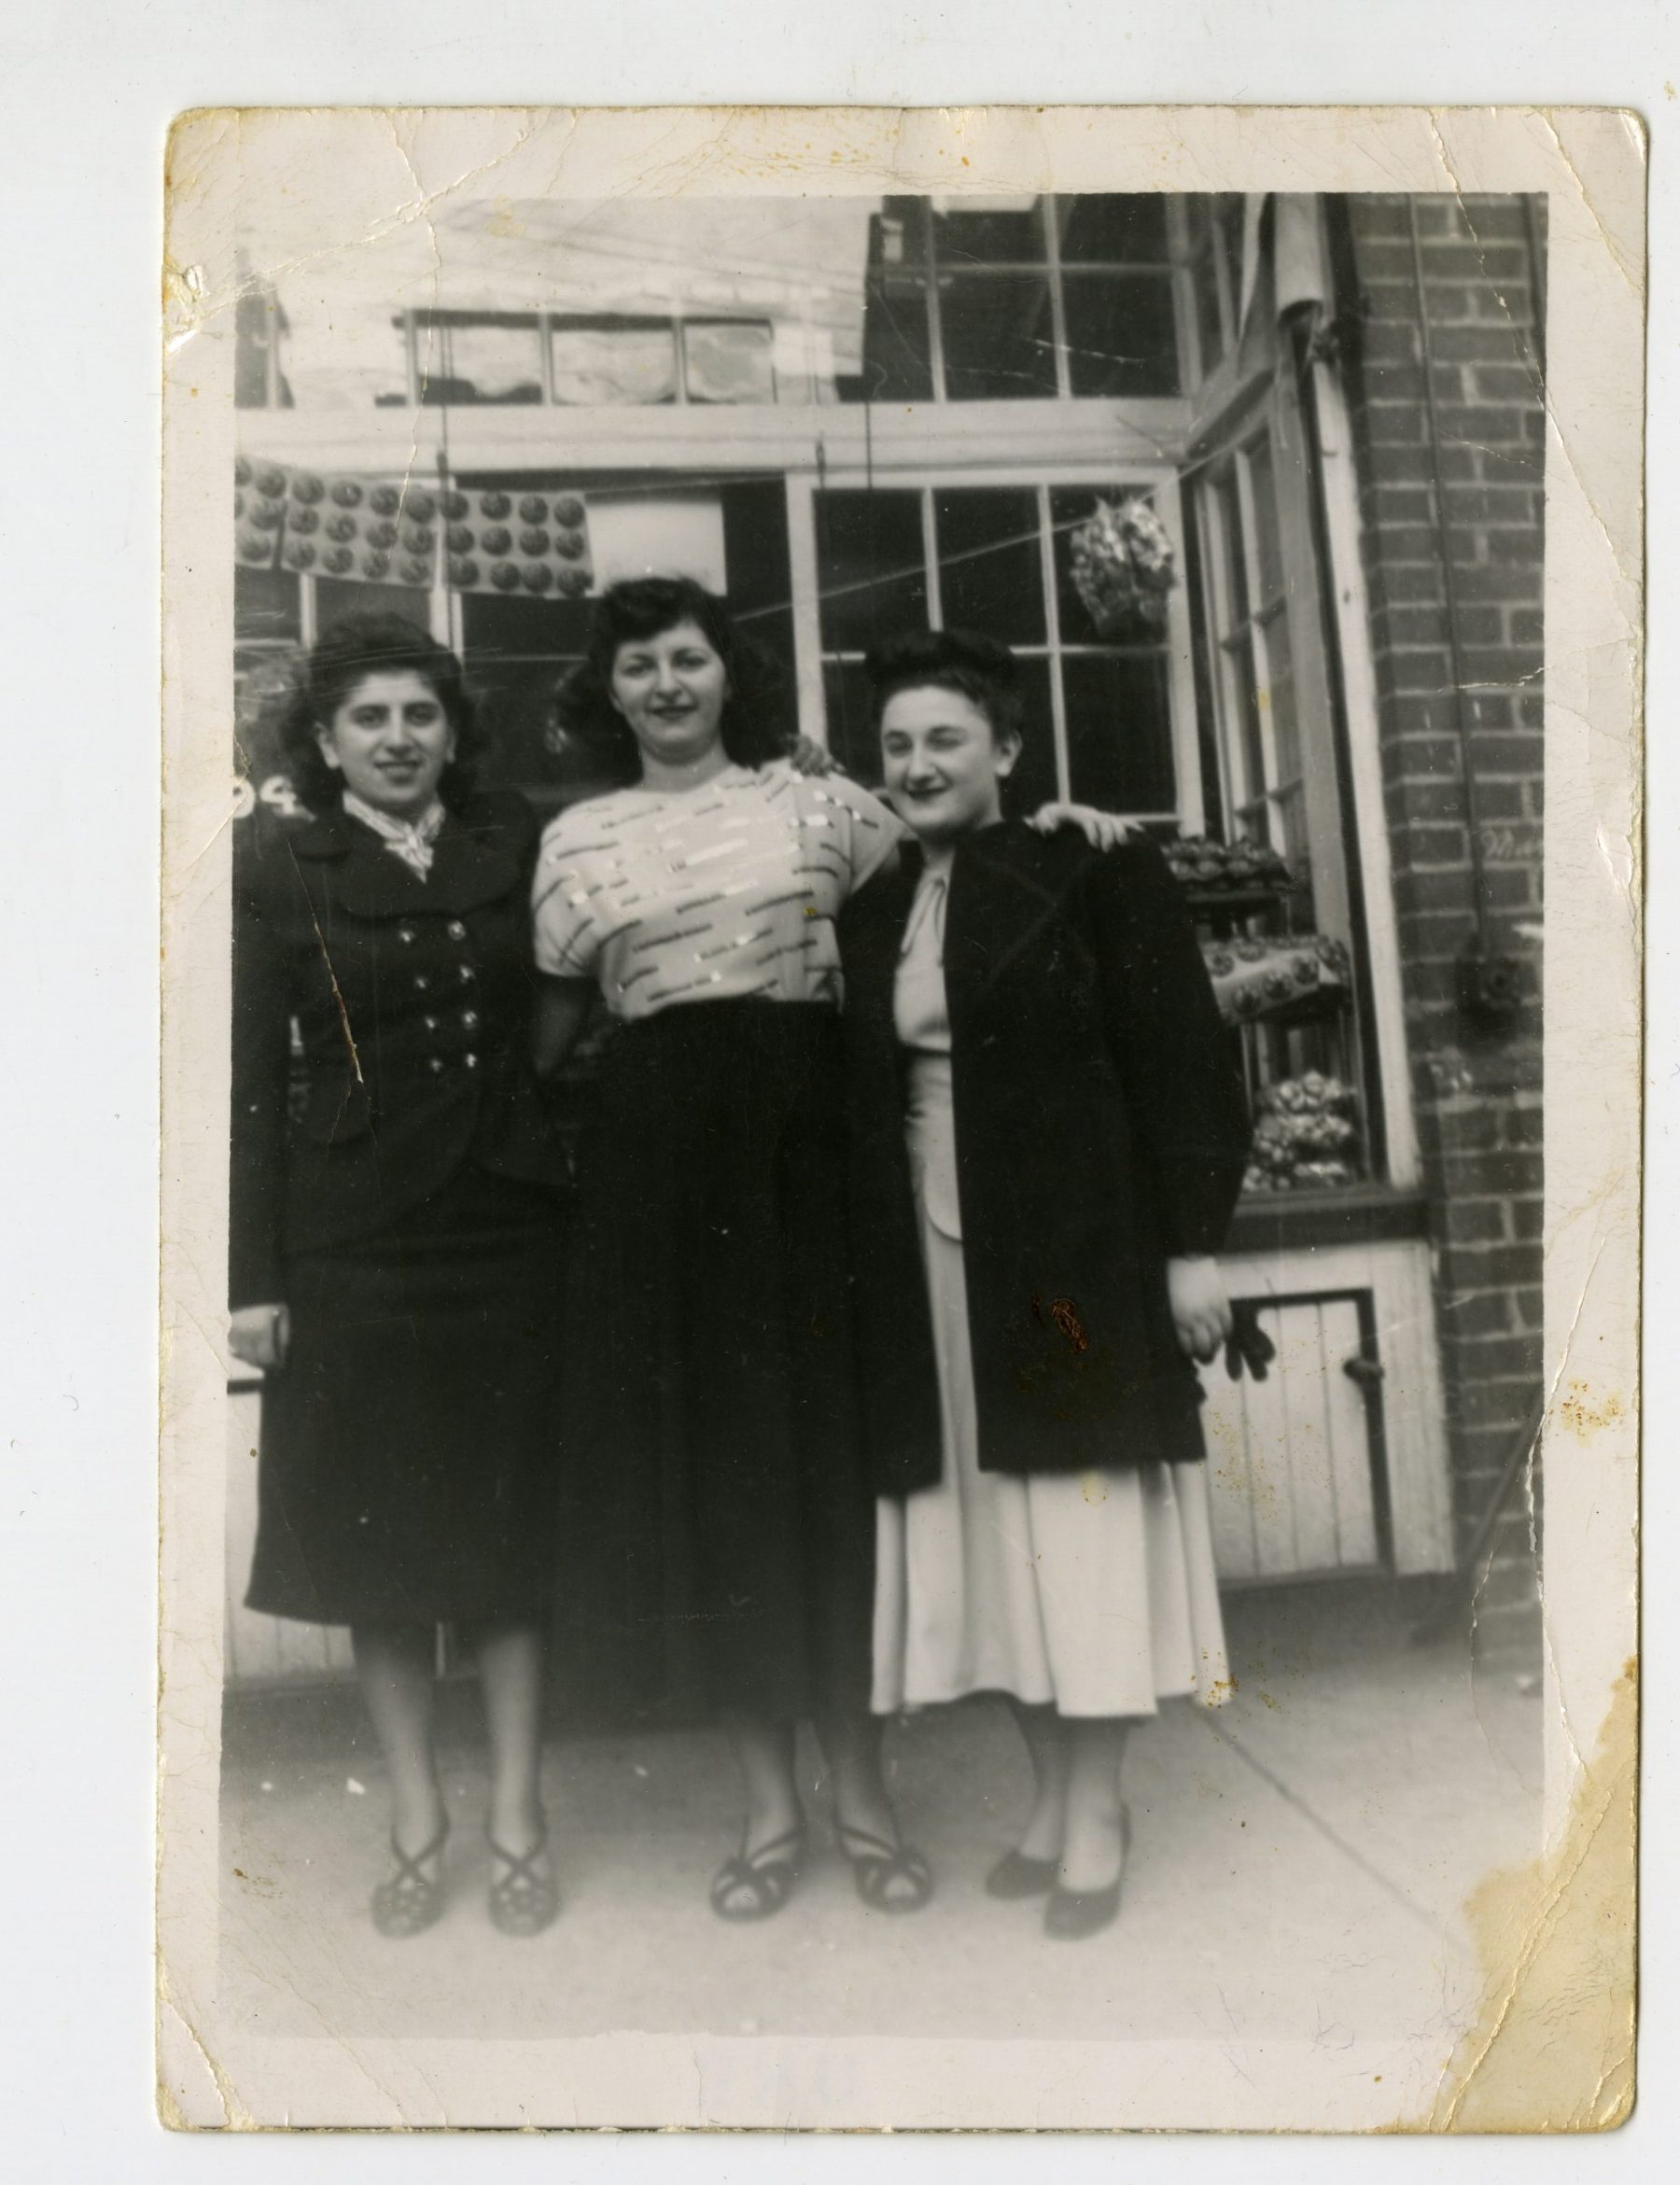 Sandy Shabinsky, Katie Lottman Grossman, and Ruth Berman (left to right) in the 1930s outside of Lottman's Bakery at its first location, 172 Baldwin Street. Sam Lottman opened the bakery in the 1920s, and his wife Emma worked alongside him. They lived on top of the bakery until 1947 and had three children, Jake Lottman, Katie Lottman Grossman, and Pearl Lottman Godfrey. Like many other Jewish families, they eventually moved north and out of the market.   OJA, accession 2013-11-2.